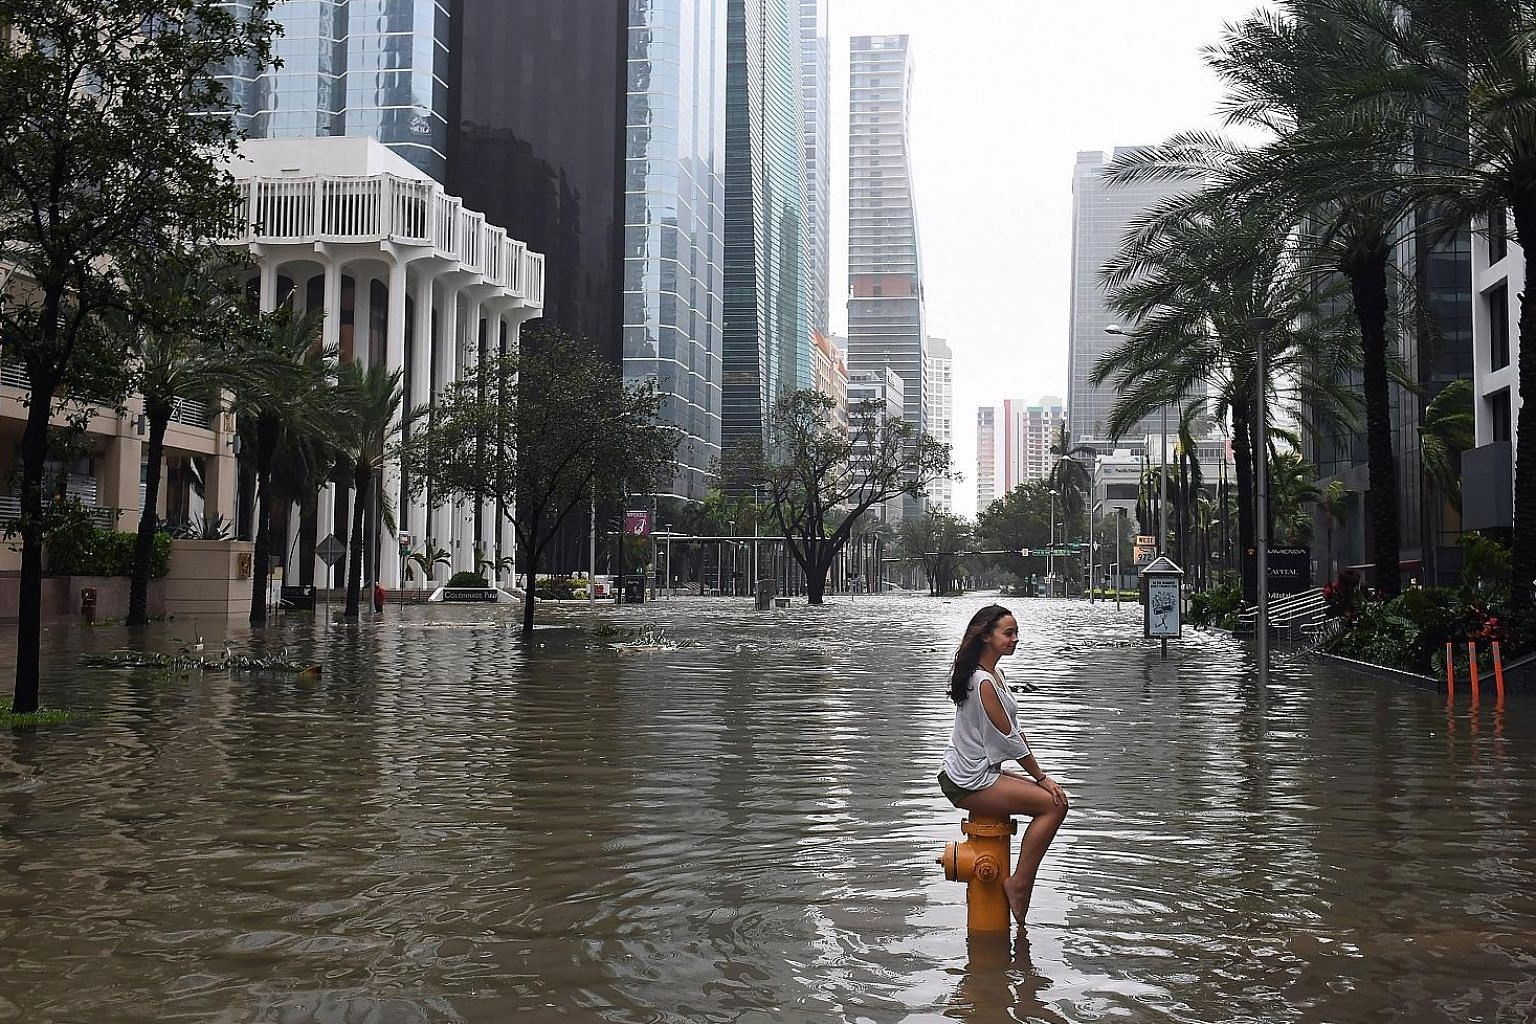 A Miami resident keeping her cool as the street turns into a river around her on Sunday. Irma's force might be diminished, but its potential for flash floods and staggering rainfall was not. Government forecasters said up to 38cm of rain was possible